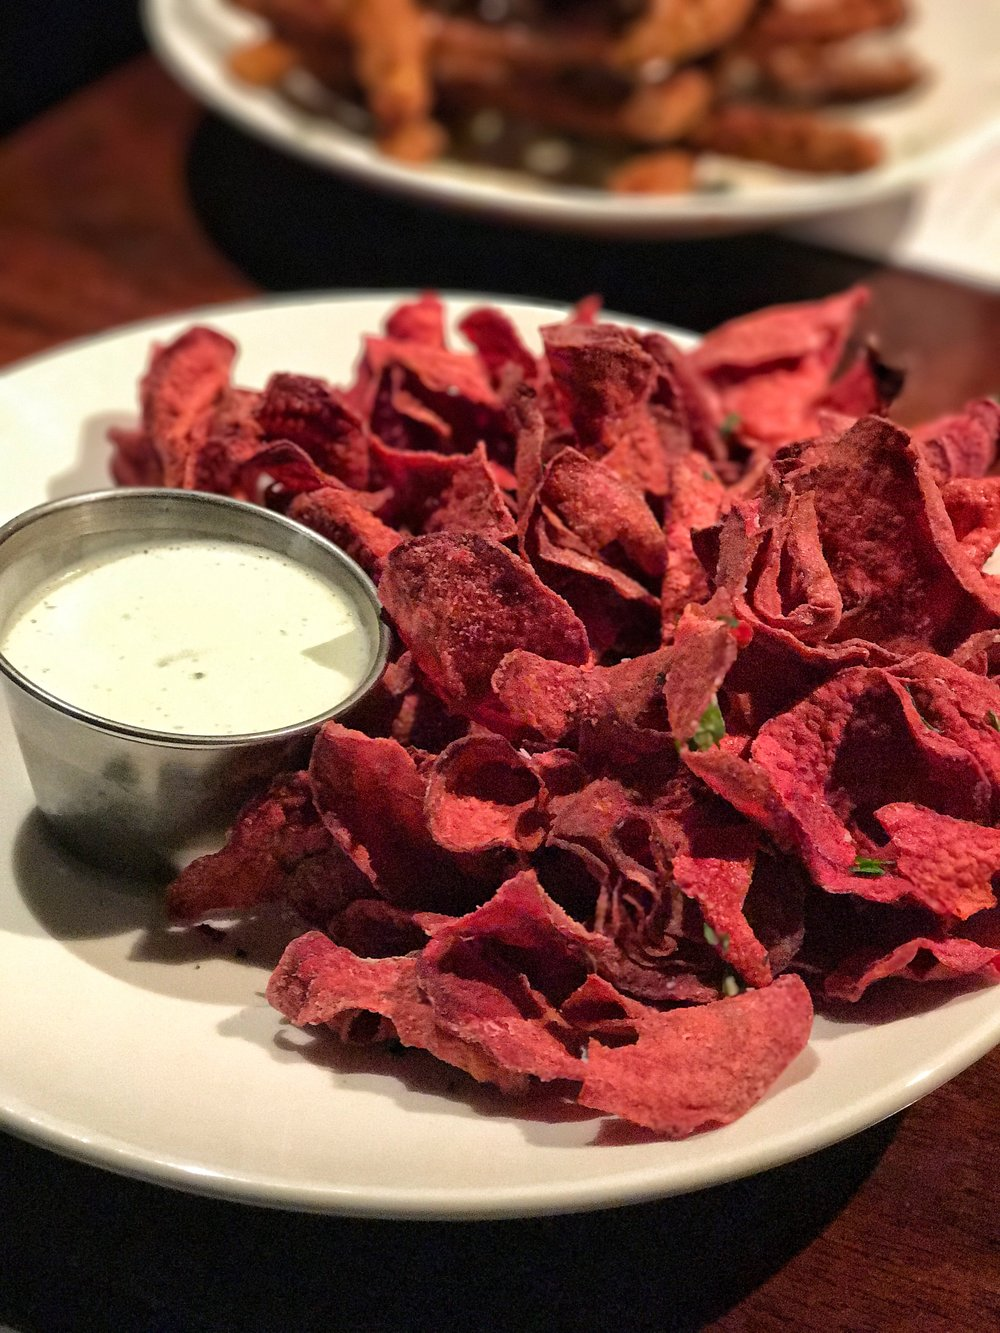 Spiralized Beet Chips - another AMAZING app on the new menu.